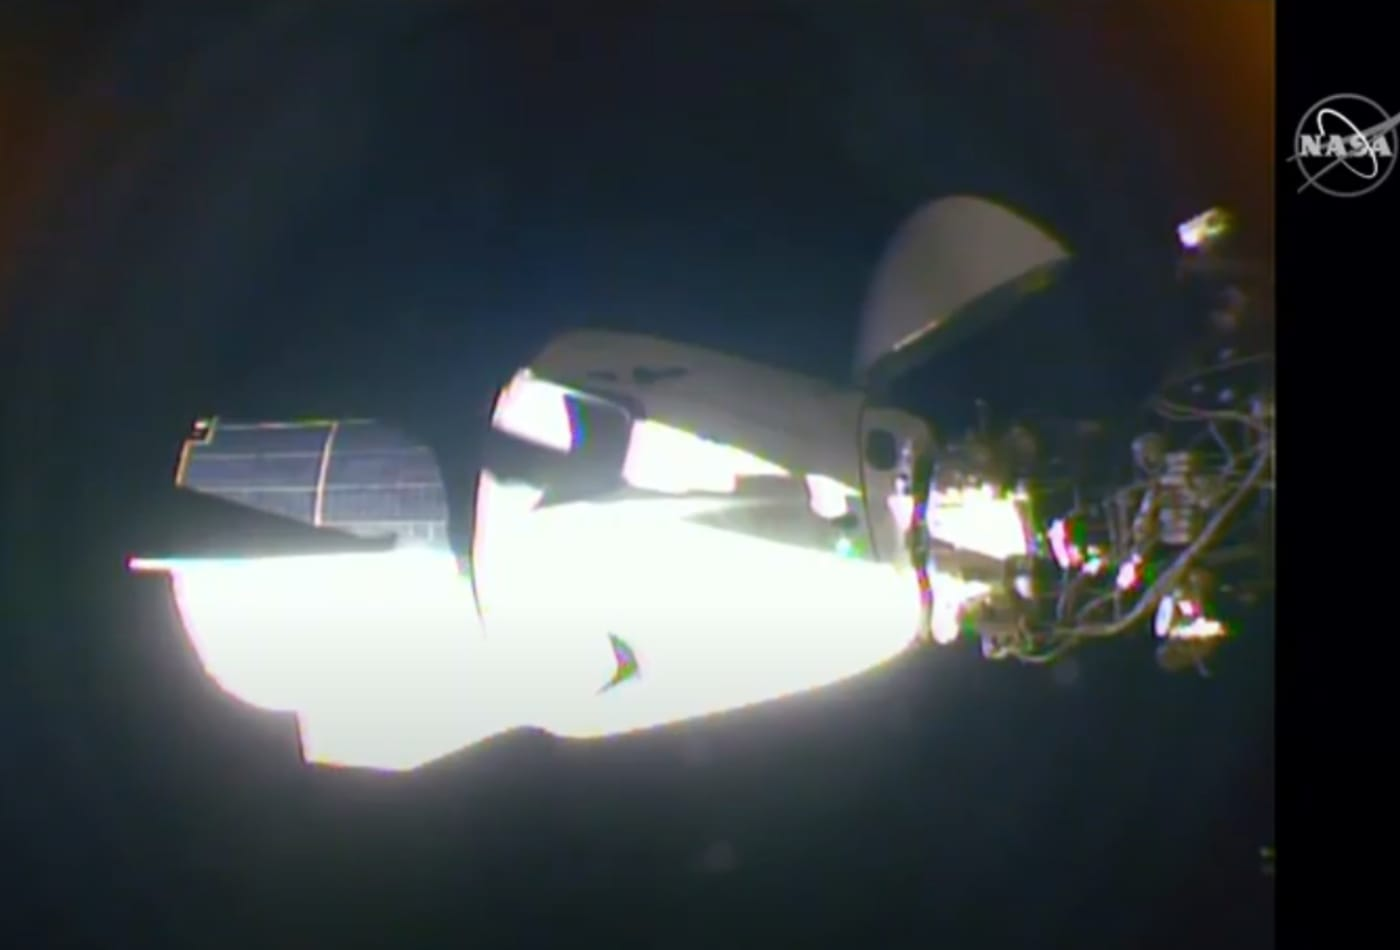 SpaceX's Crew Dragon capsule carrying NASA astronauts docks with the International Space Station